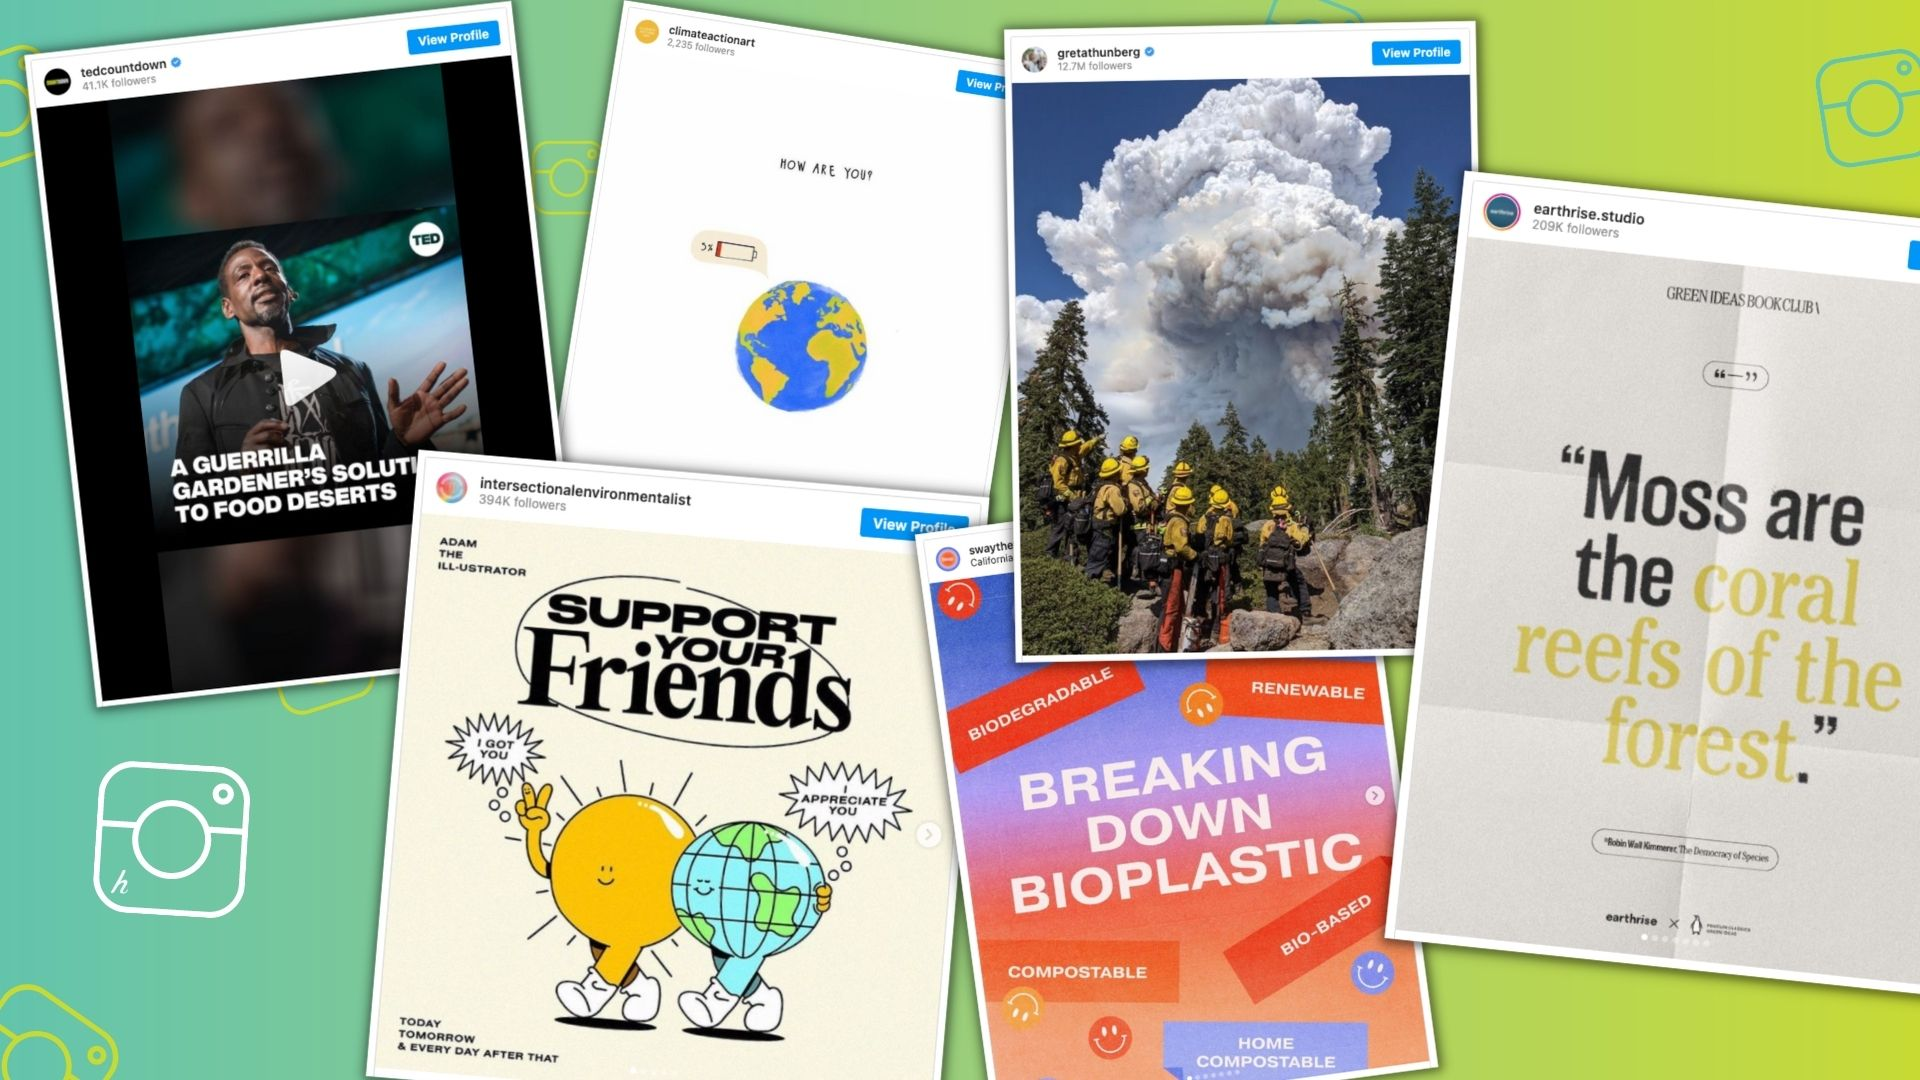 Educational Climate Action Accounts on Instagram